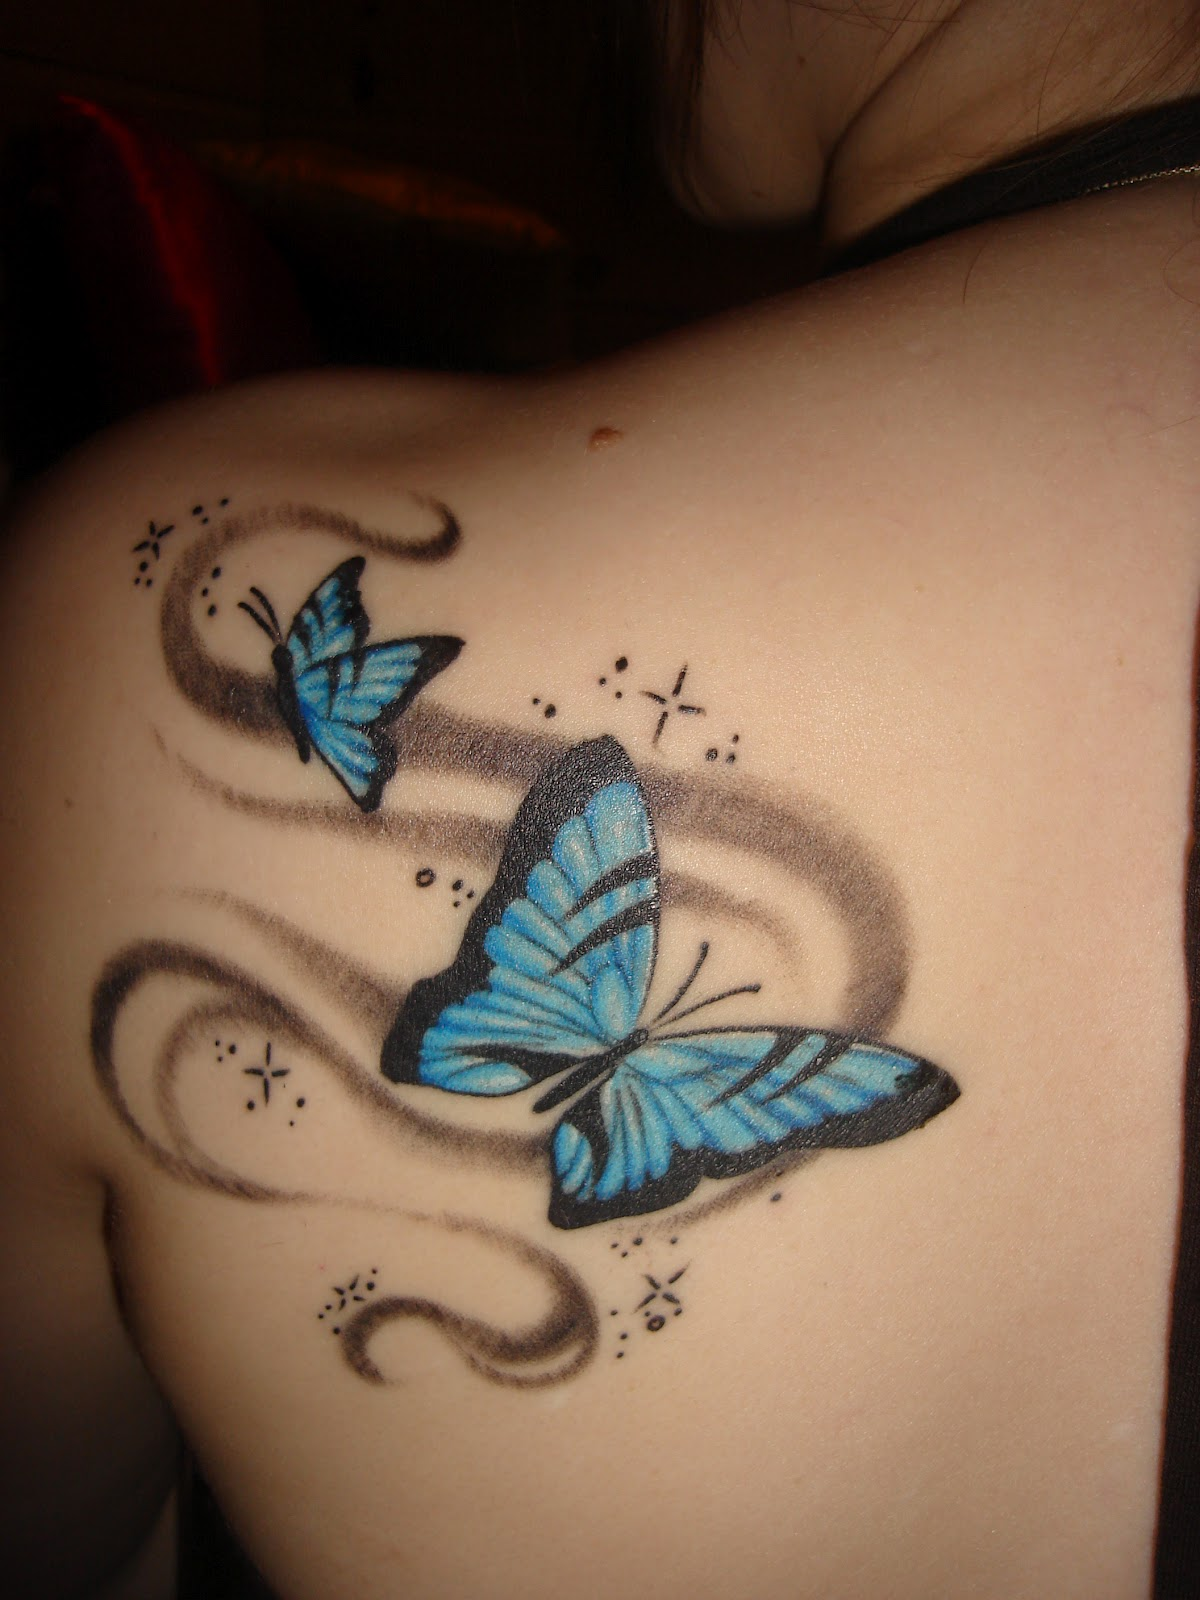 Tattoos: Getting Butterflies Tattoo Design Is Favorite Among Womens